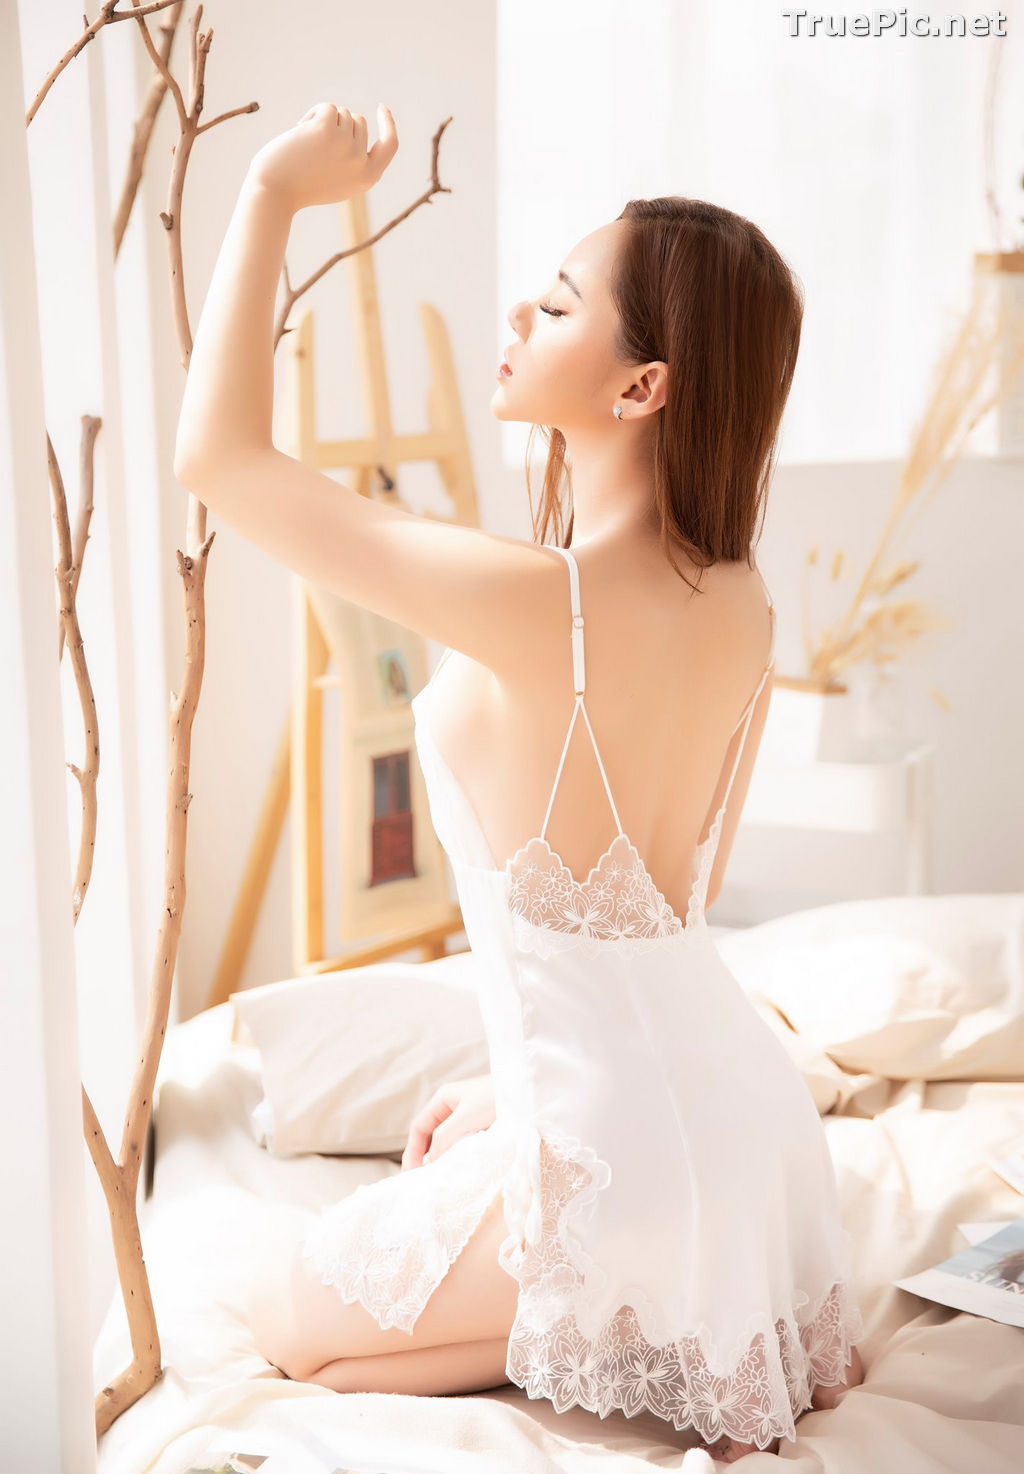 Image Vietnamese Model – Hot Beautiful Girls In White Collection #2 - TruePic.net - Picture-2